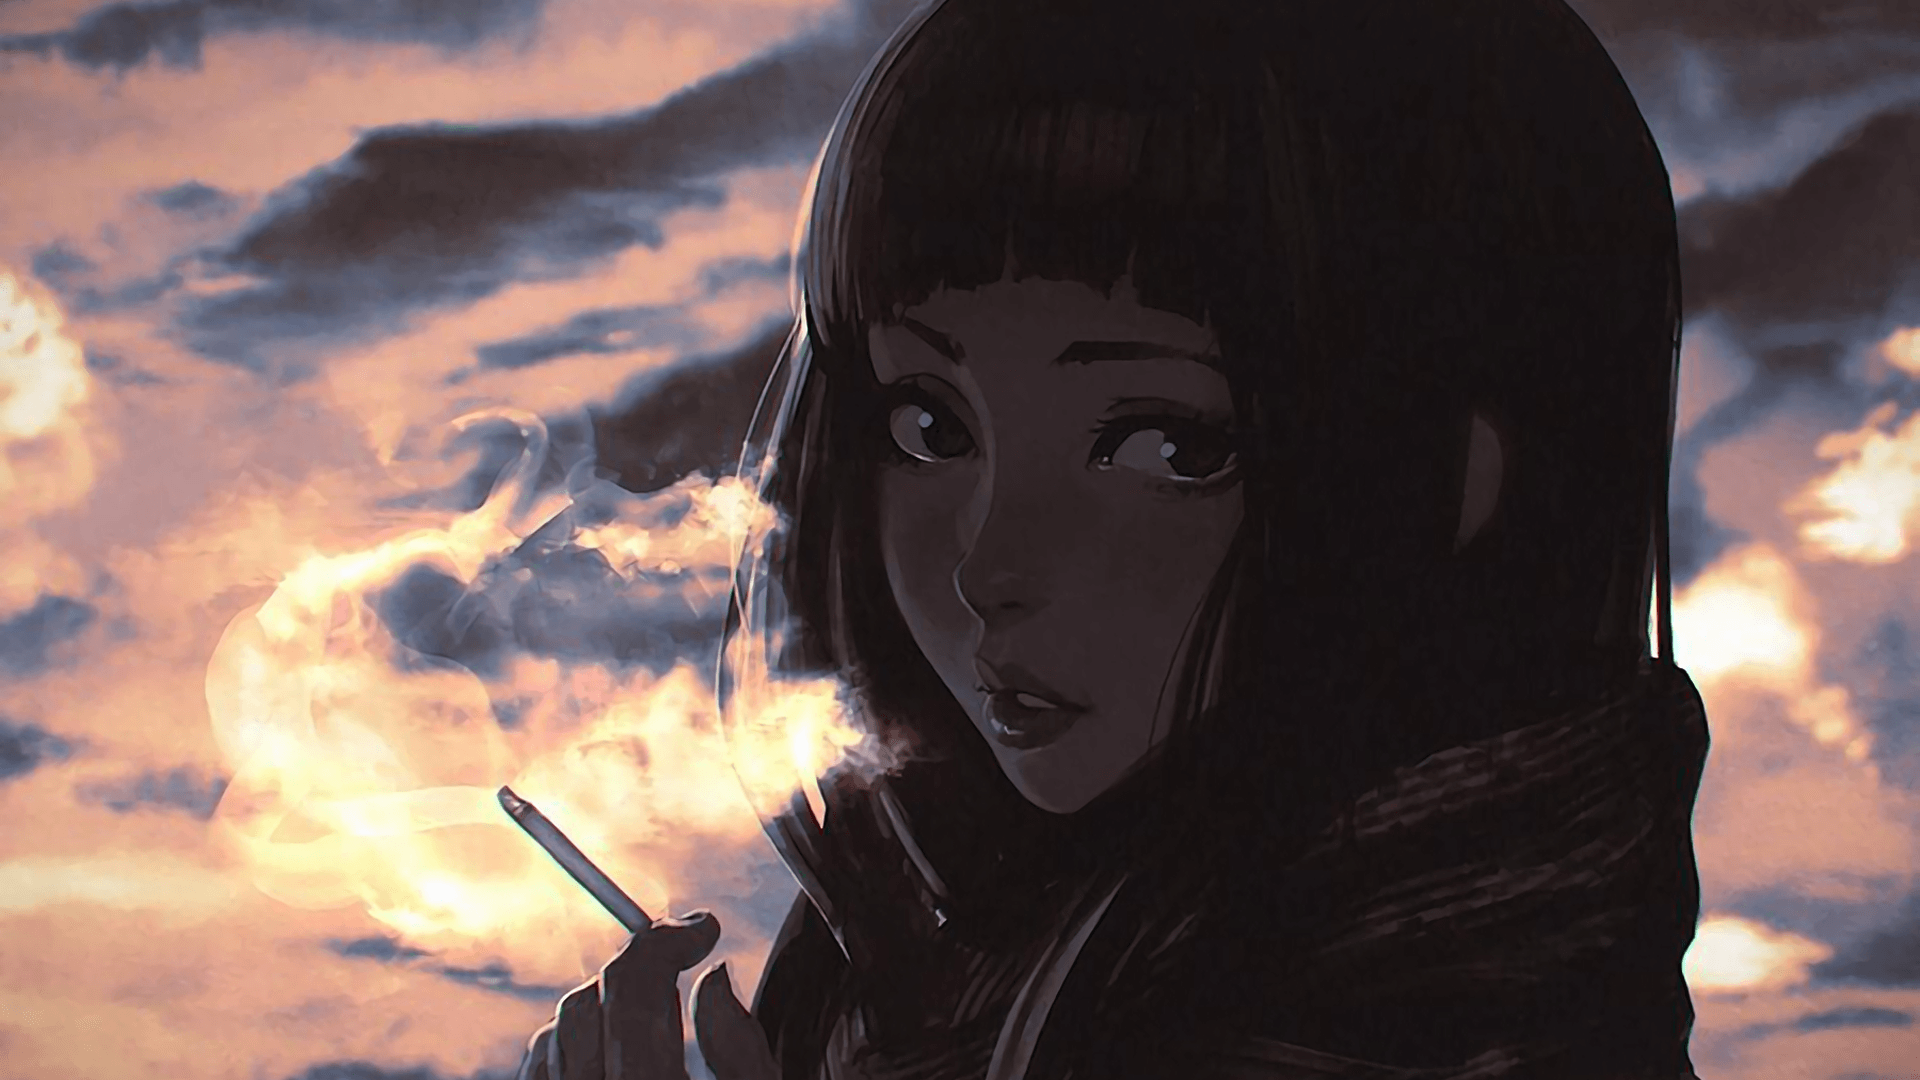 Anime Girl Smoking Wallpapers - Top Free Anime Girl Smoking